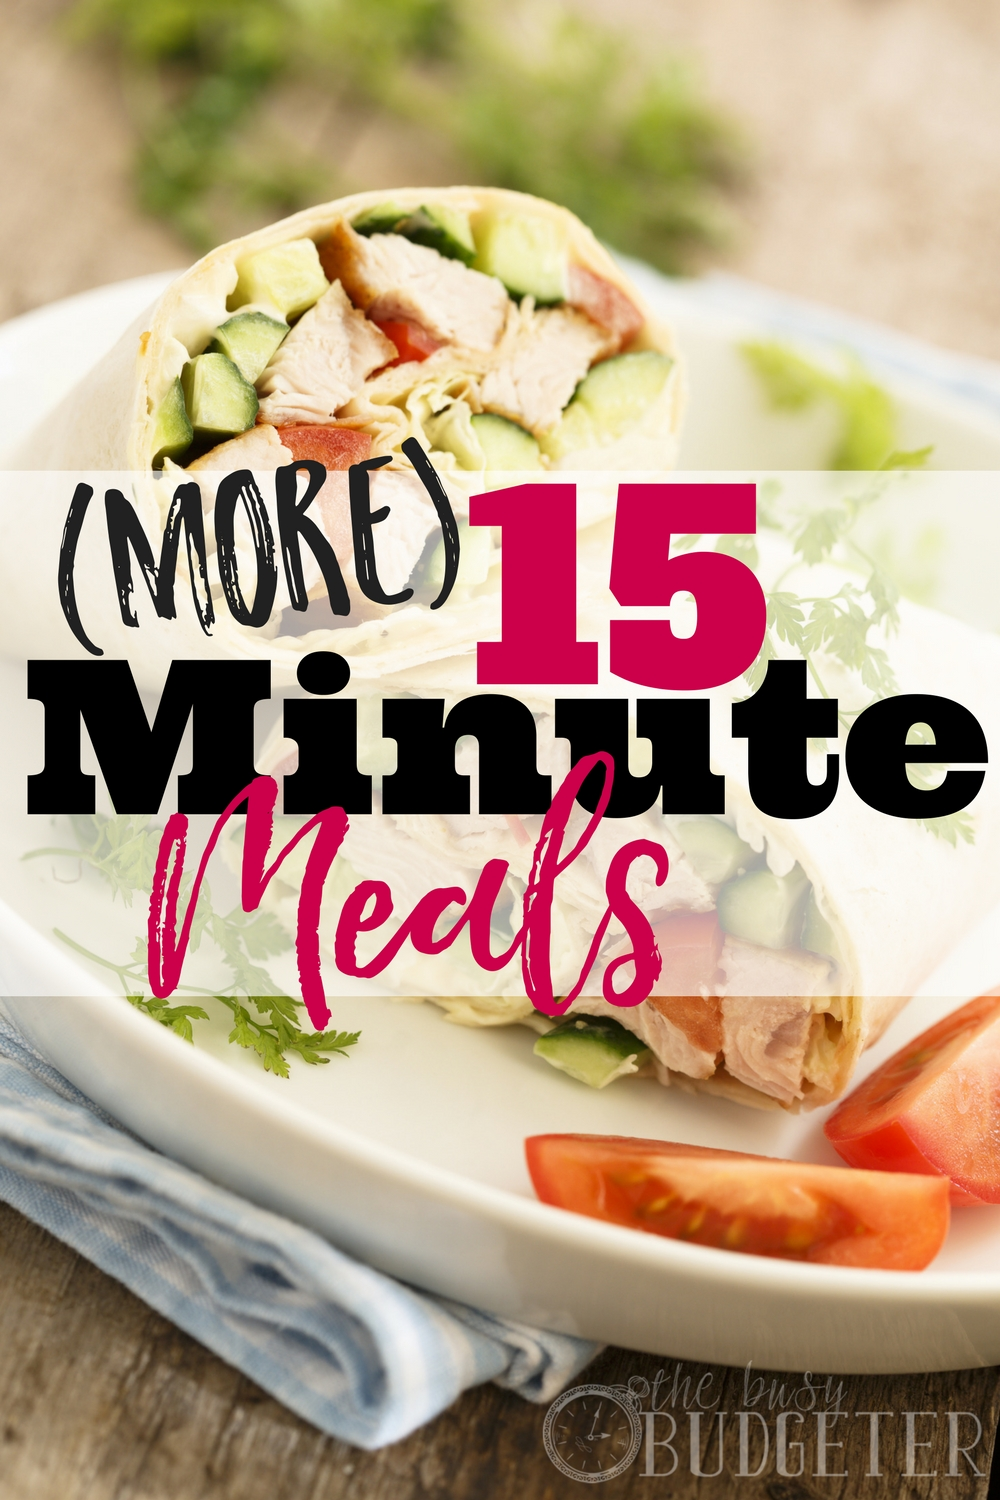 Not only are these quick and easy meals super yummy, but my kids LOVED them (and even the hubby approved!) If you are anything like me-- there are some days that you would PAY for someone to give you a list of awesome 15 minute meals! This is totally my new go-to list for dinner ideas!